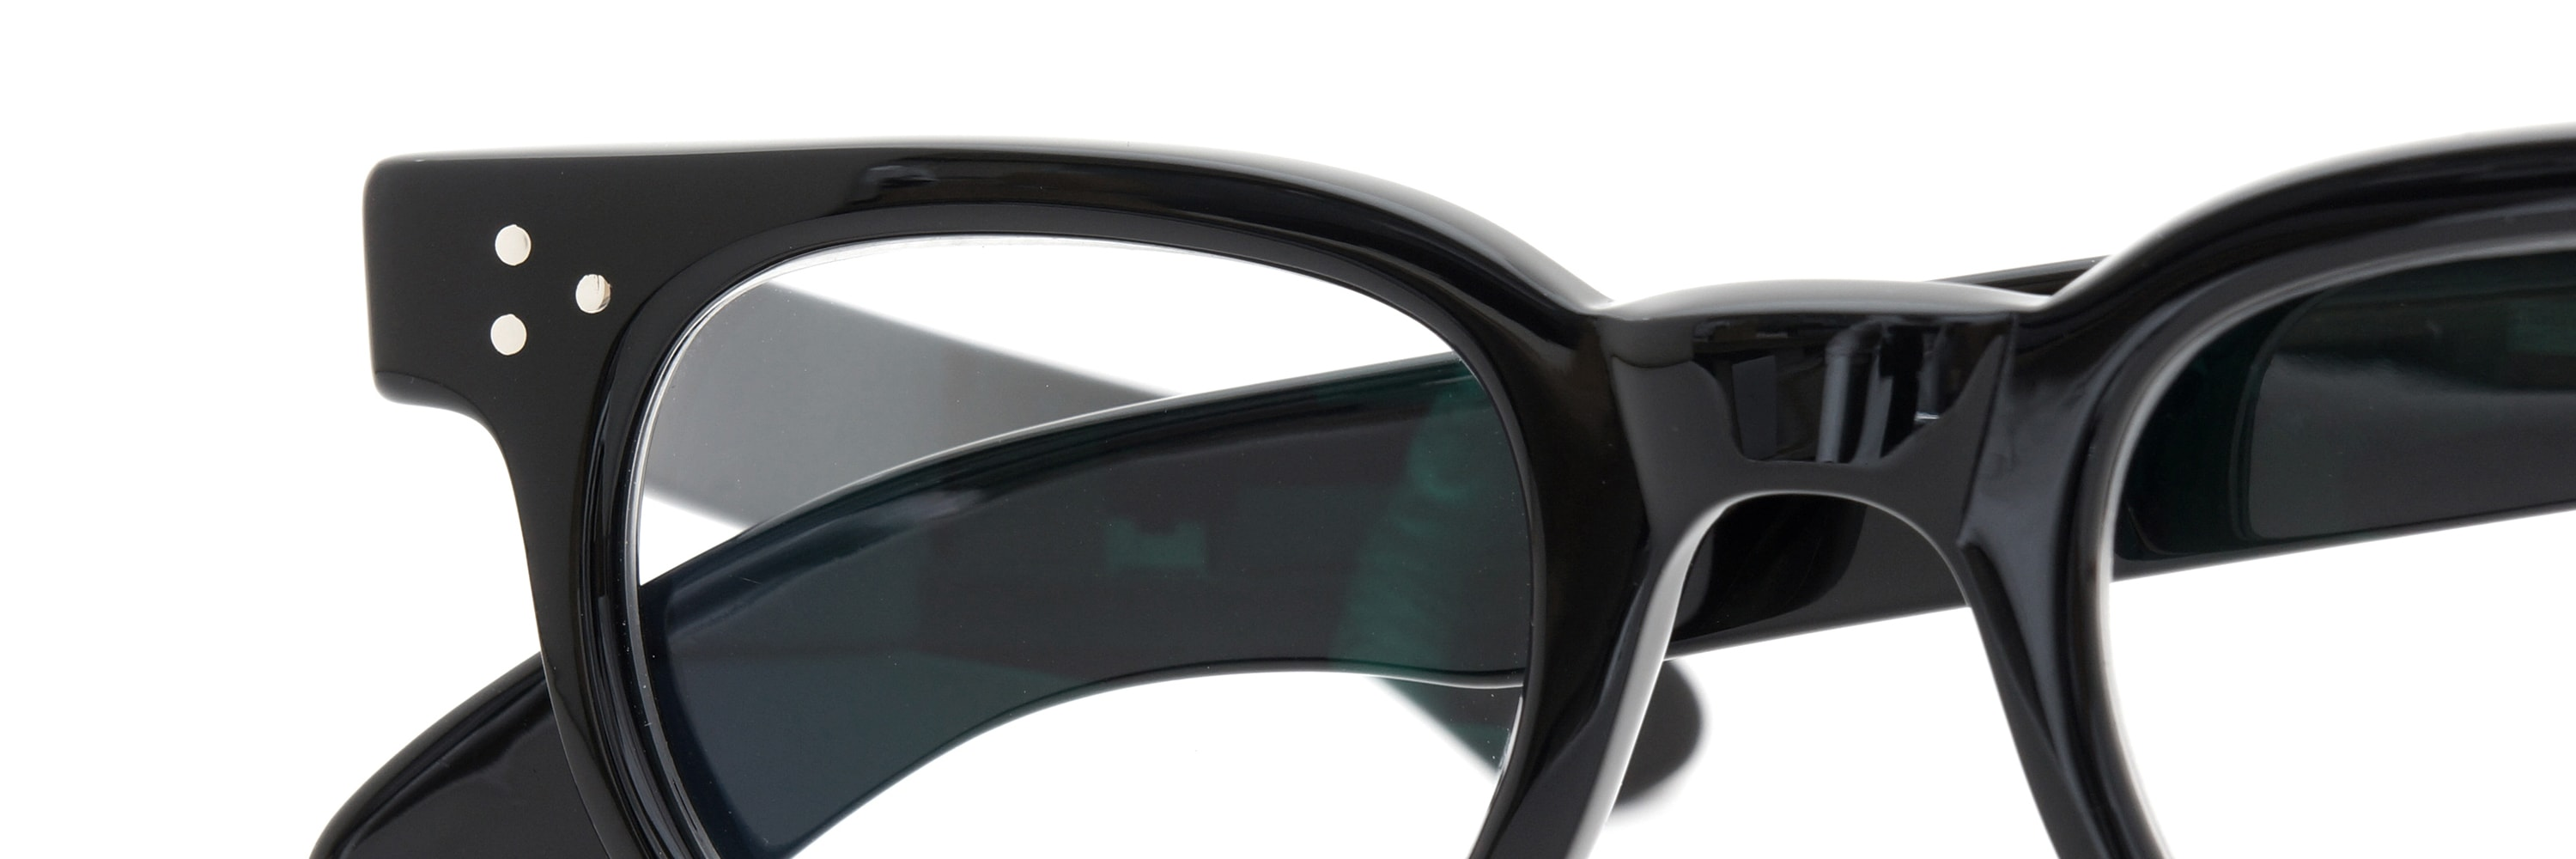 The Spectacle メガネ 1950s-70s TART OPTICAL FDR (FRAME USA) BLACK 44-24 イメージ